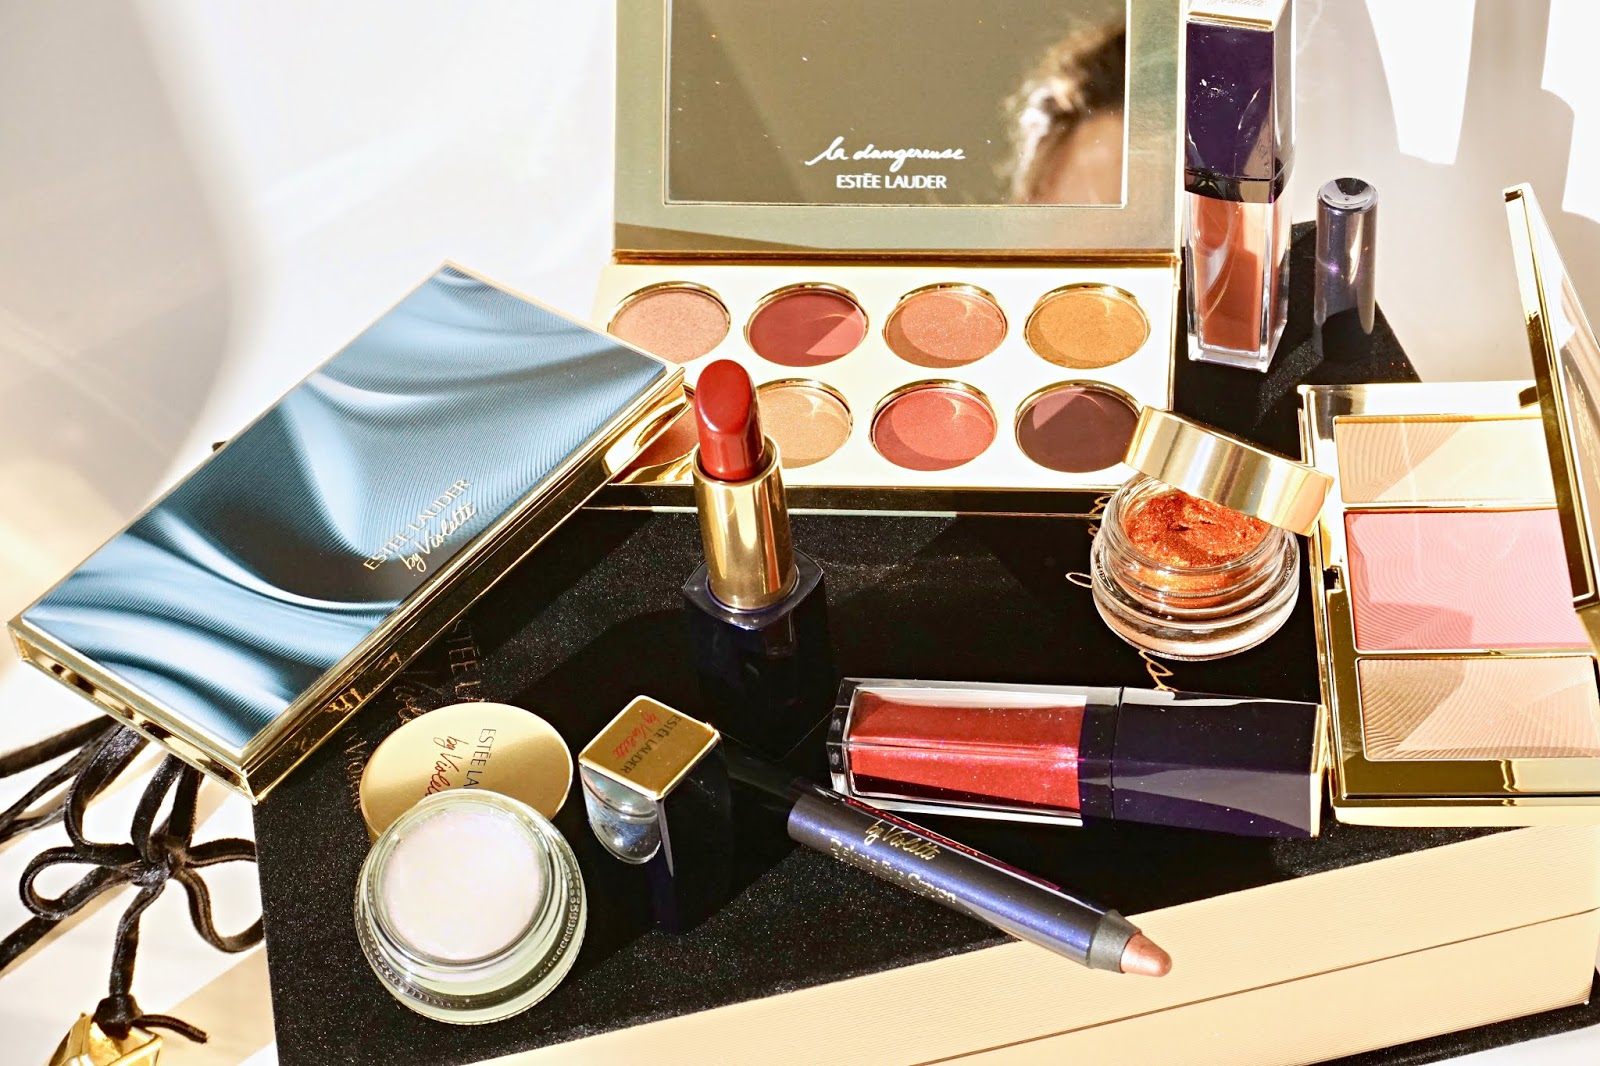 277c71d7f73ae0 First Look: The Estee Lauder by Violette La Dangereuse Collection Plus 5  Sales I'm Shopping